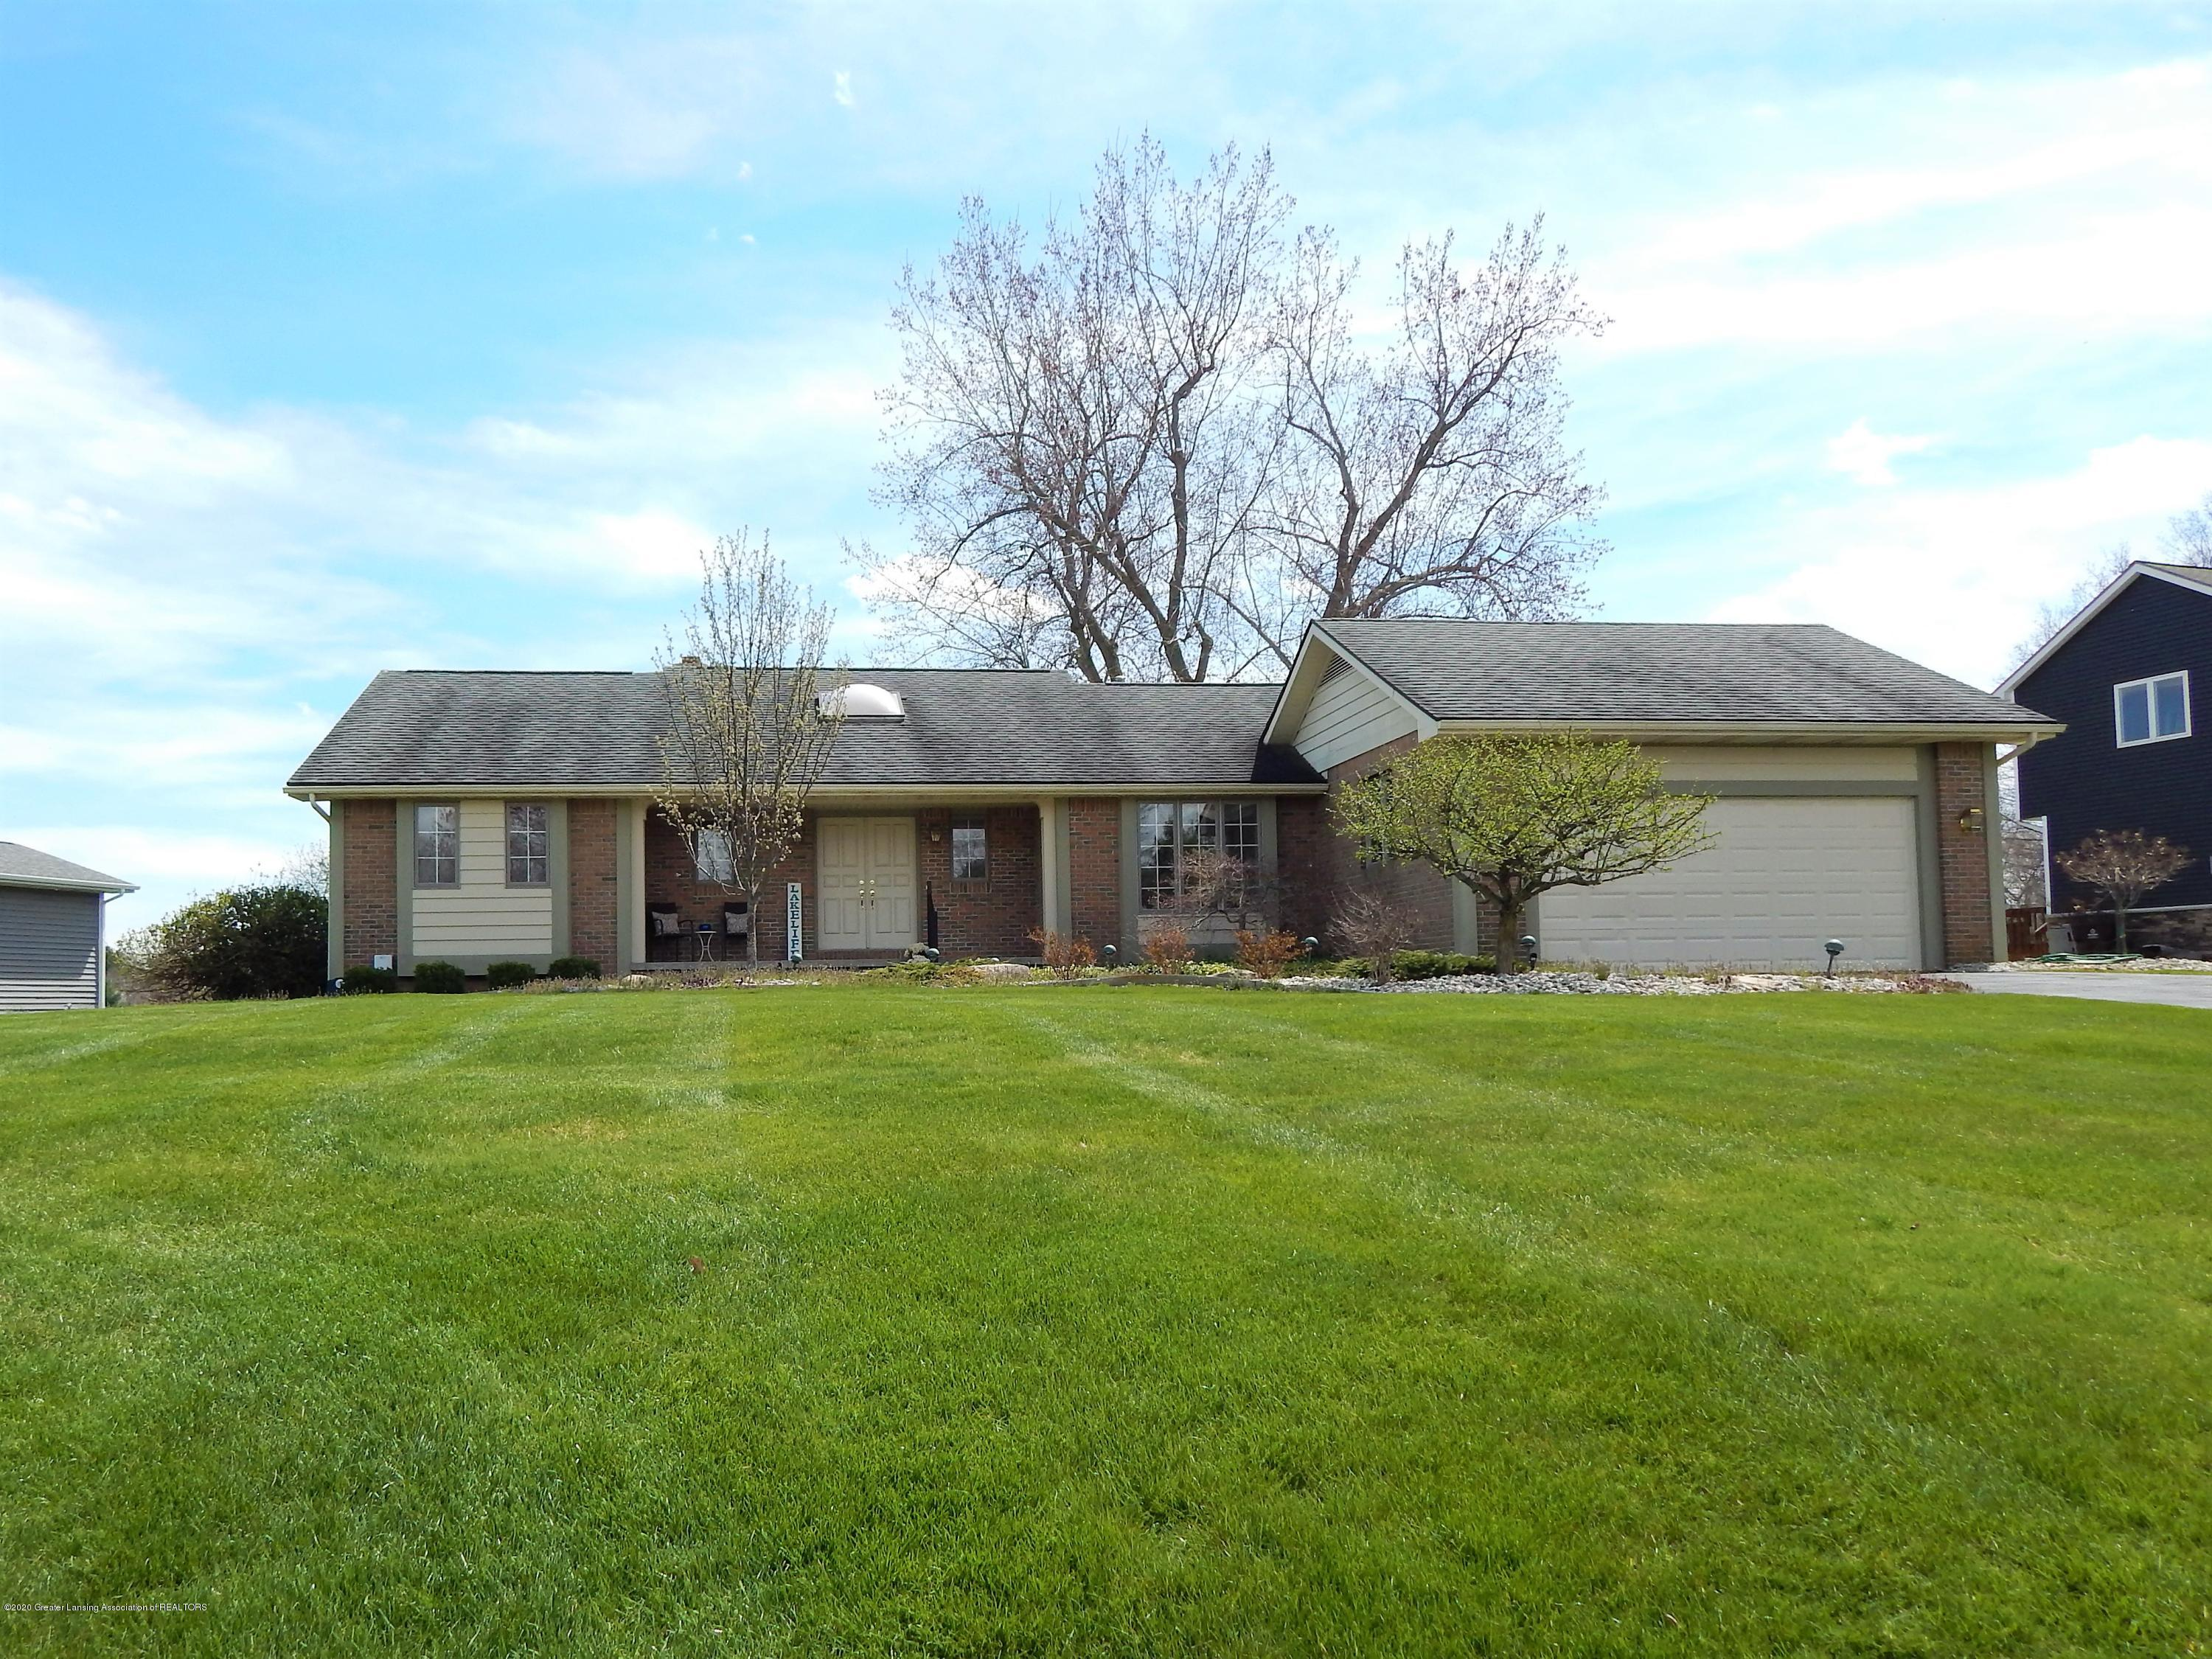 9283 W Scenic Lake Dr - Front Exterior - 3